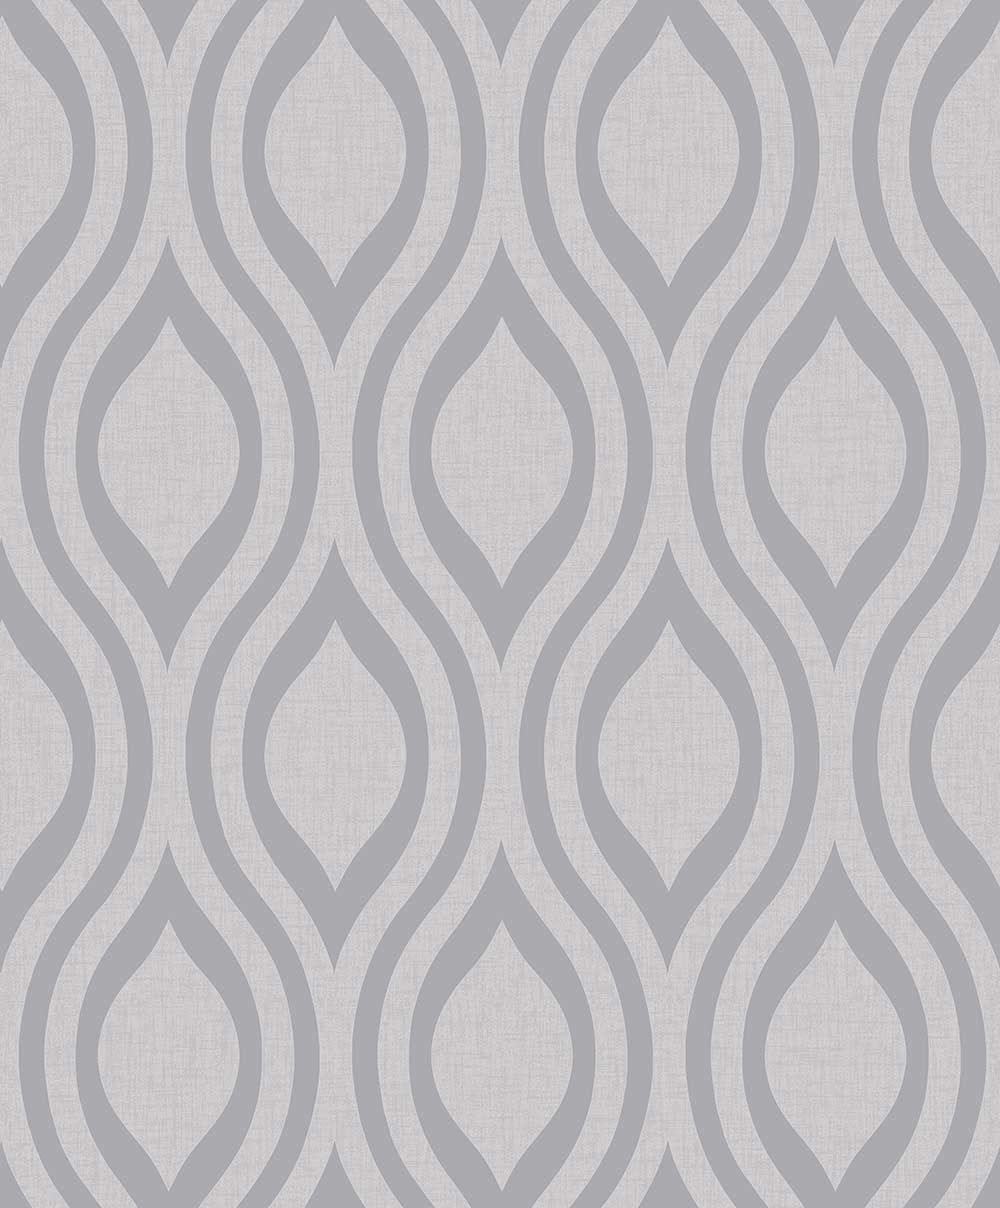 Luxe Ogee By Arthouse Silver Wallpaper 910204 Silver